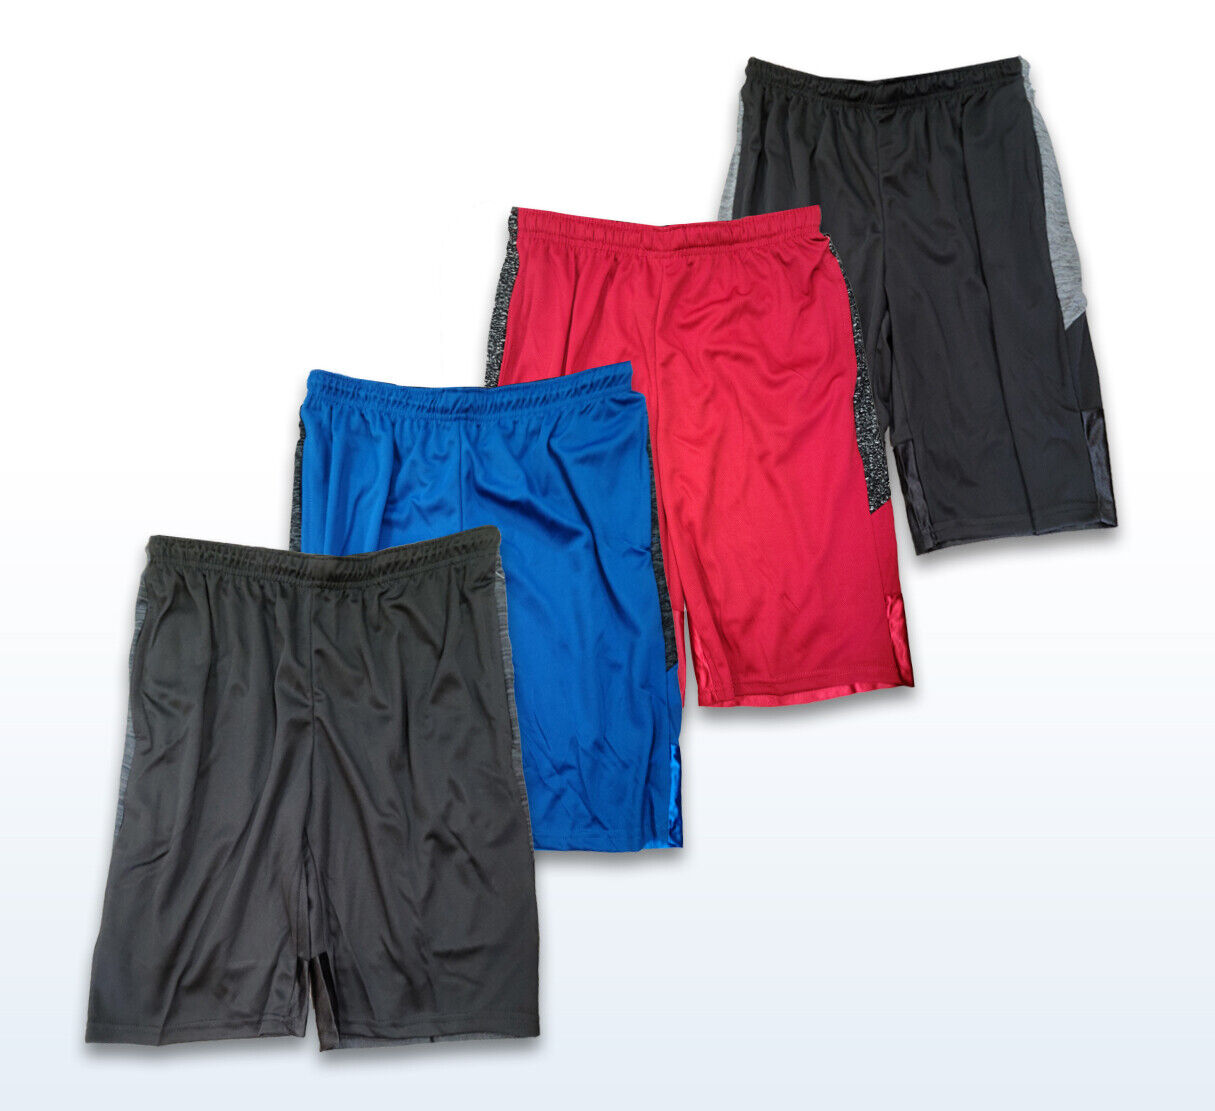 6th Man Pack of 4 Men's Athletic Basketball Shorts Mesh Quic